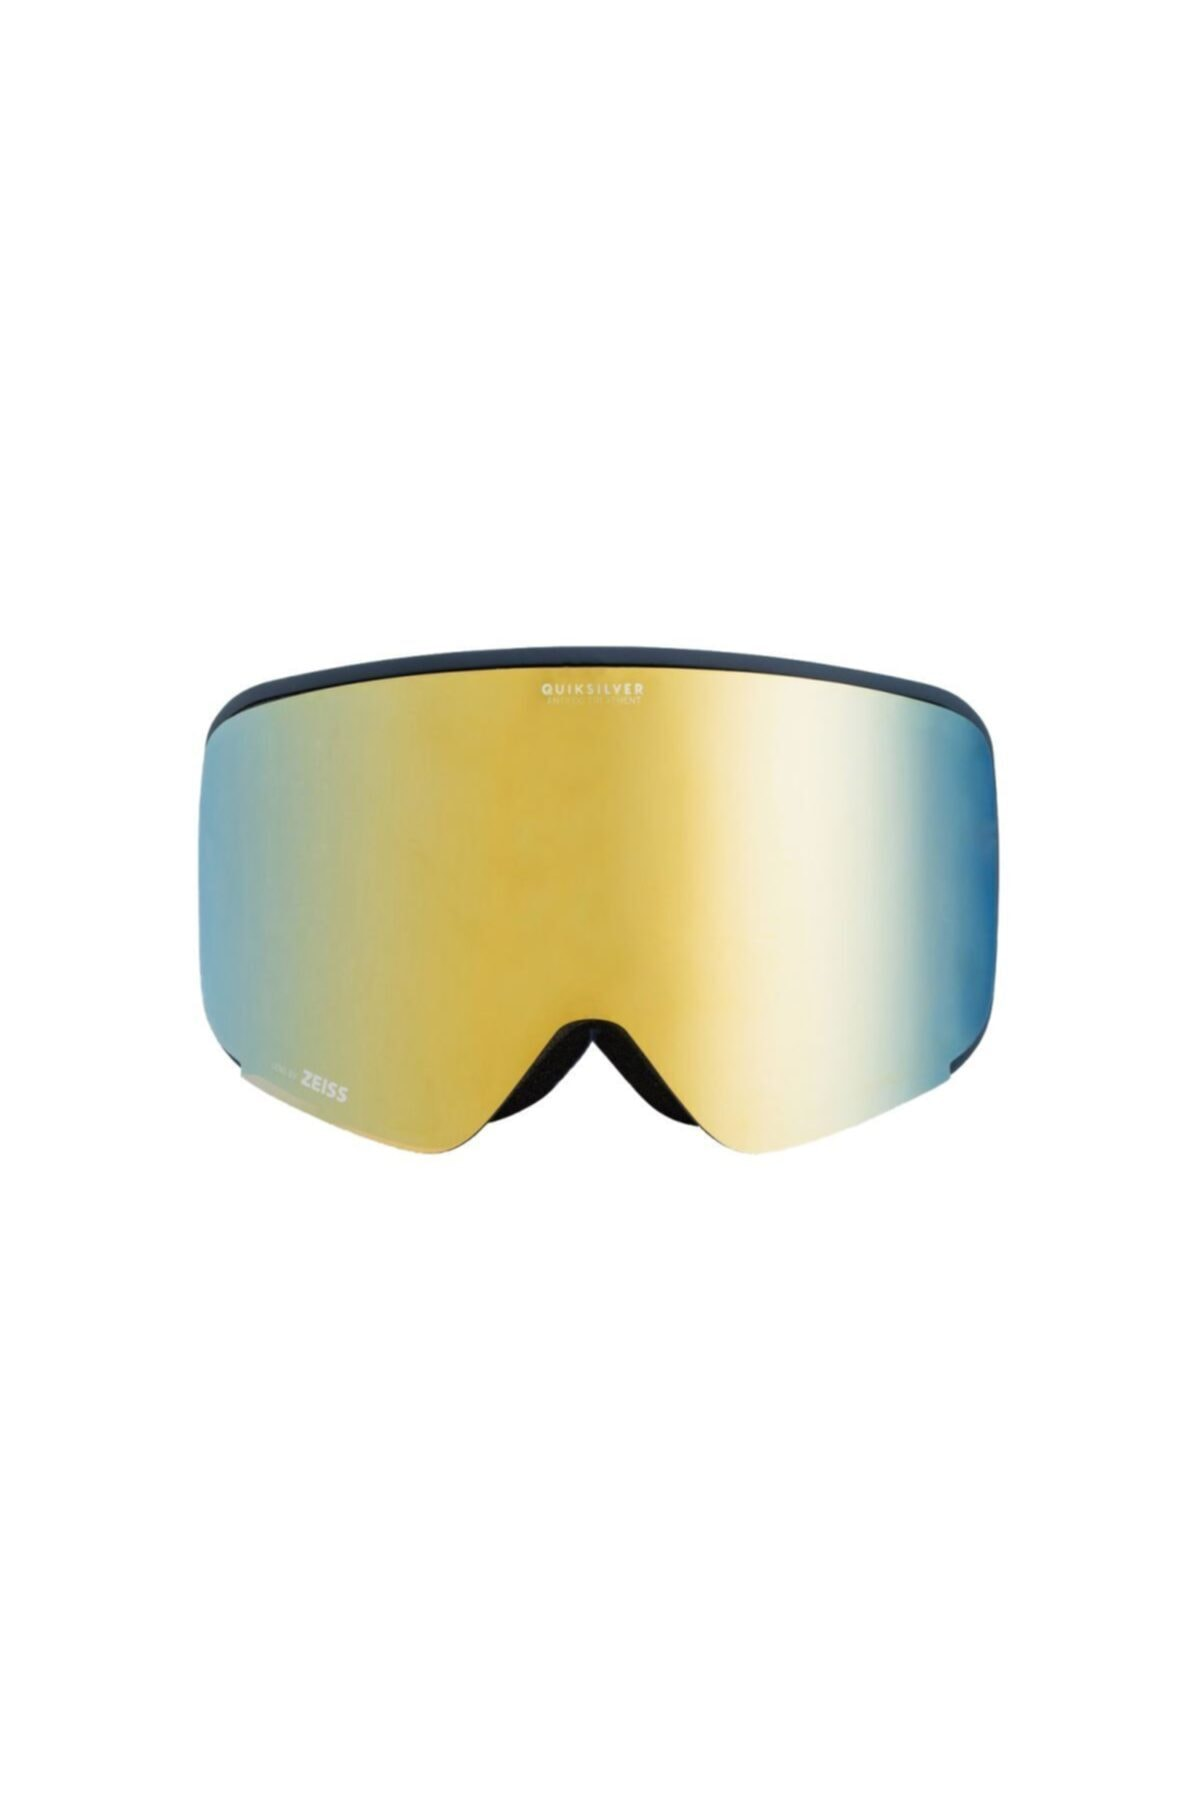 Quiksilver Swıtchback M Sngg 2